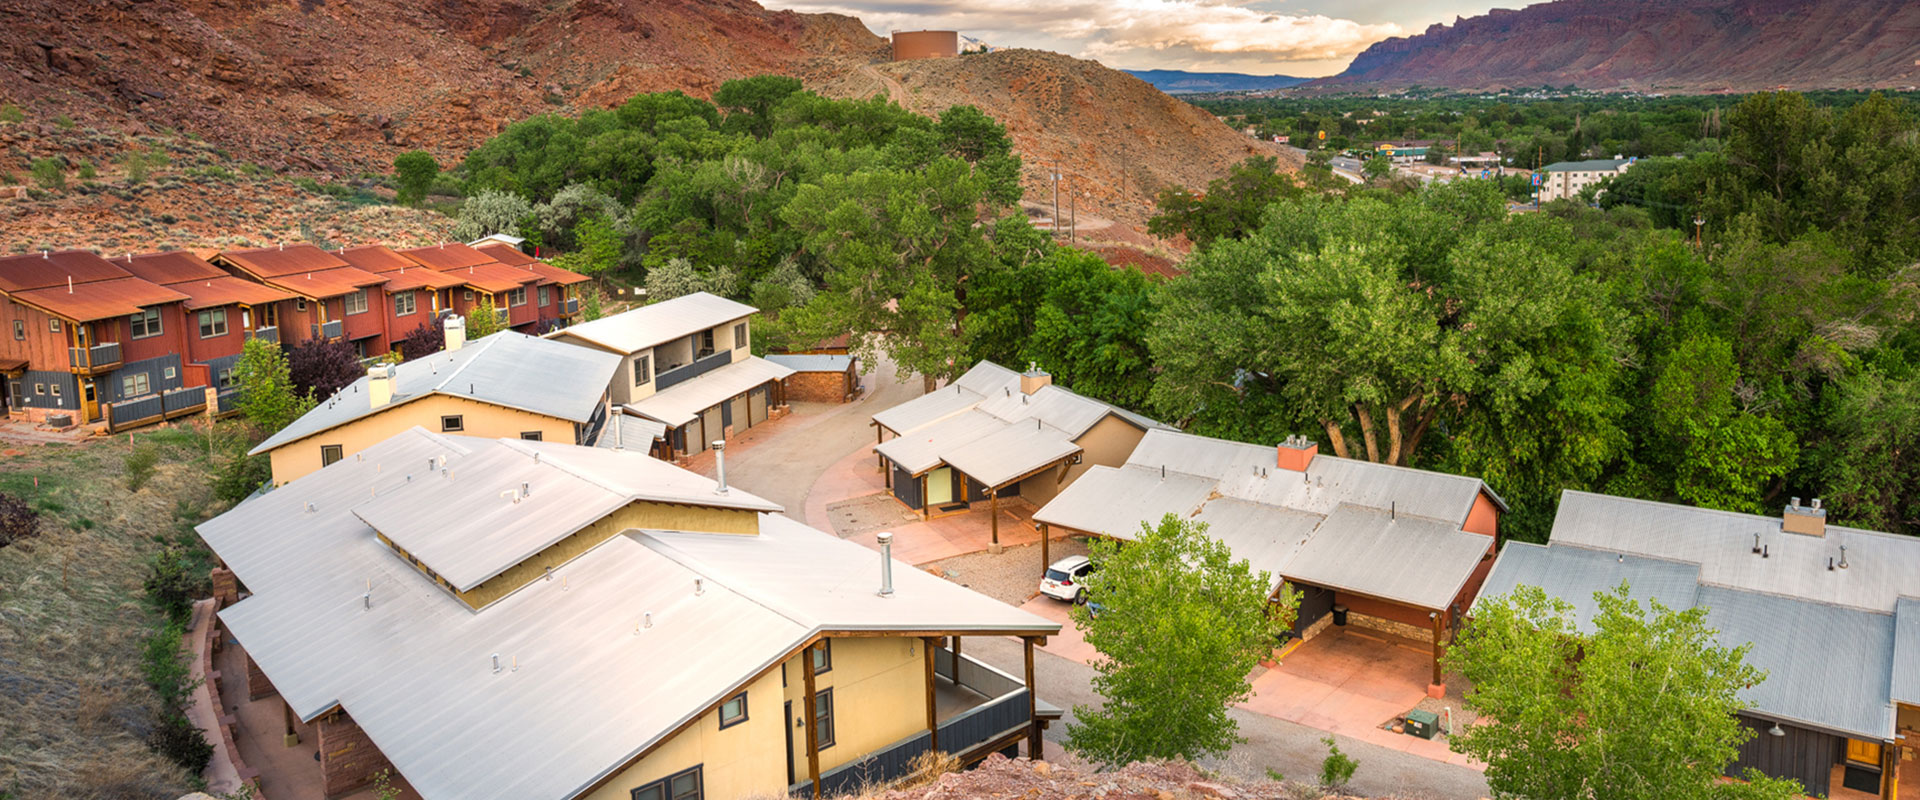 A winding serpentine man-made stream lies alongside a parallel stone paved path amidst green grass space in the public park grounds at Moab Springs Ranch.